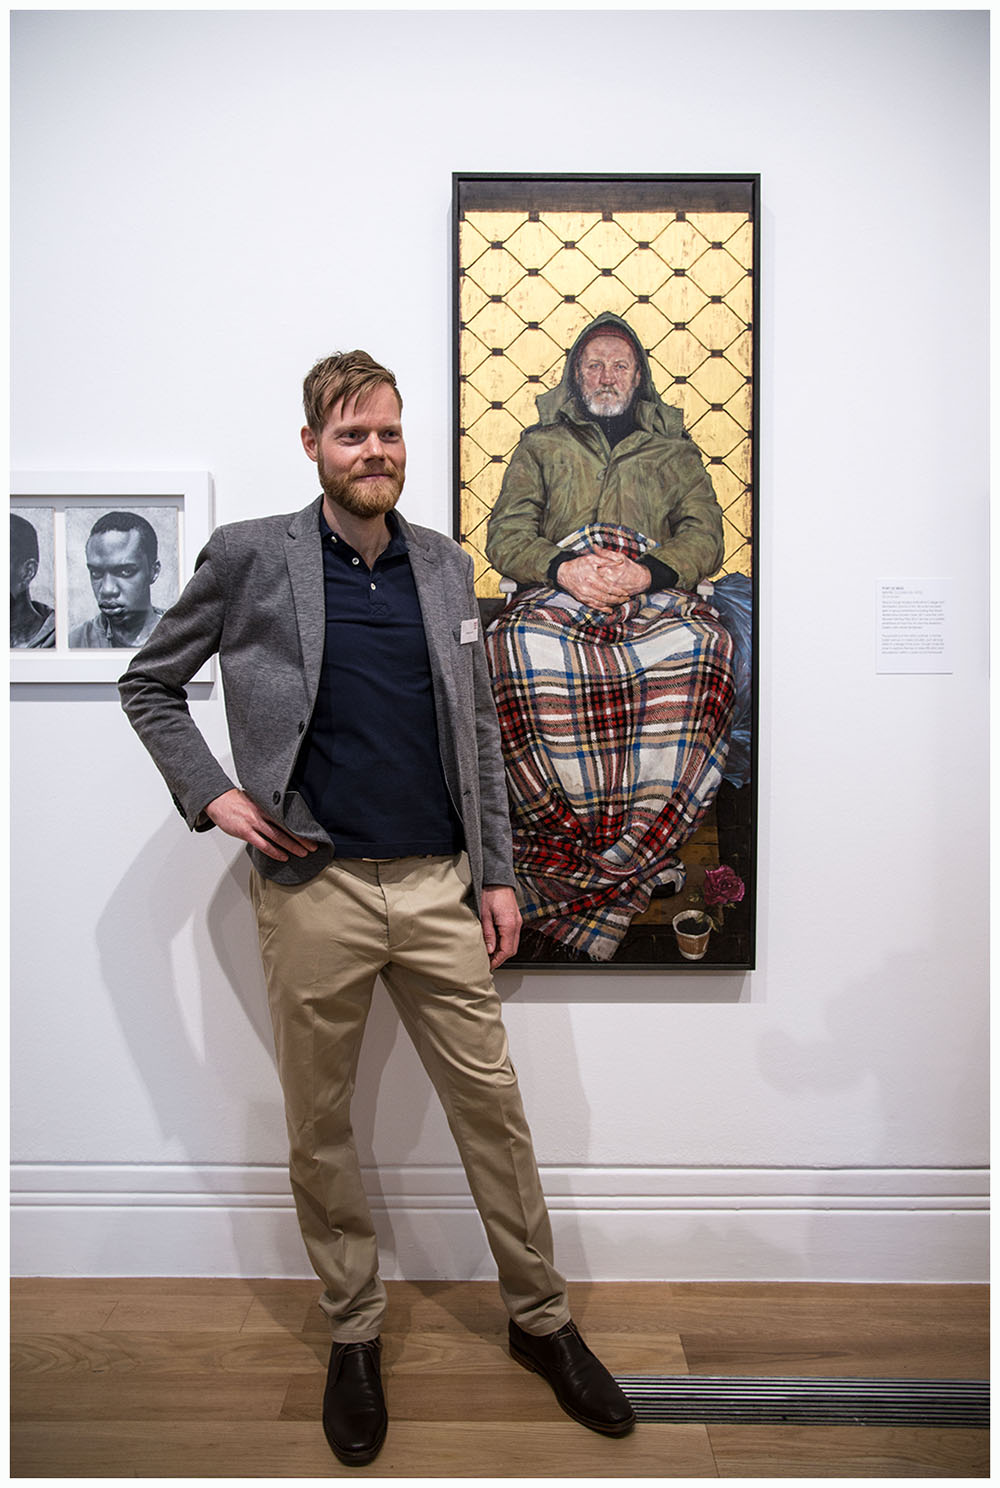 Man with a Plaid Blanket by Thomas Ganter, 2013 - Winner of the 2014 BP Portrait Award